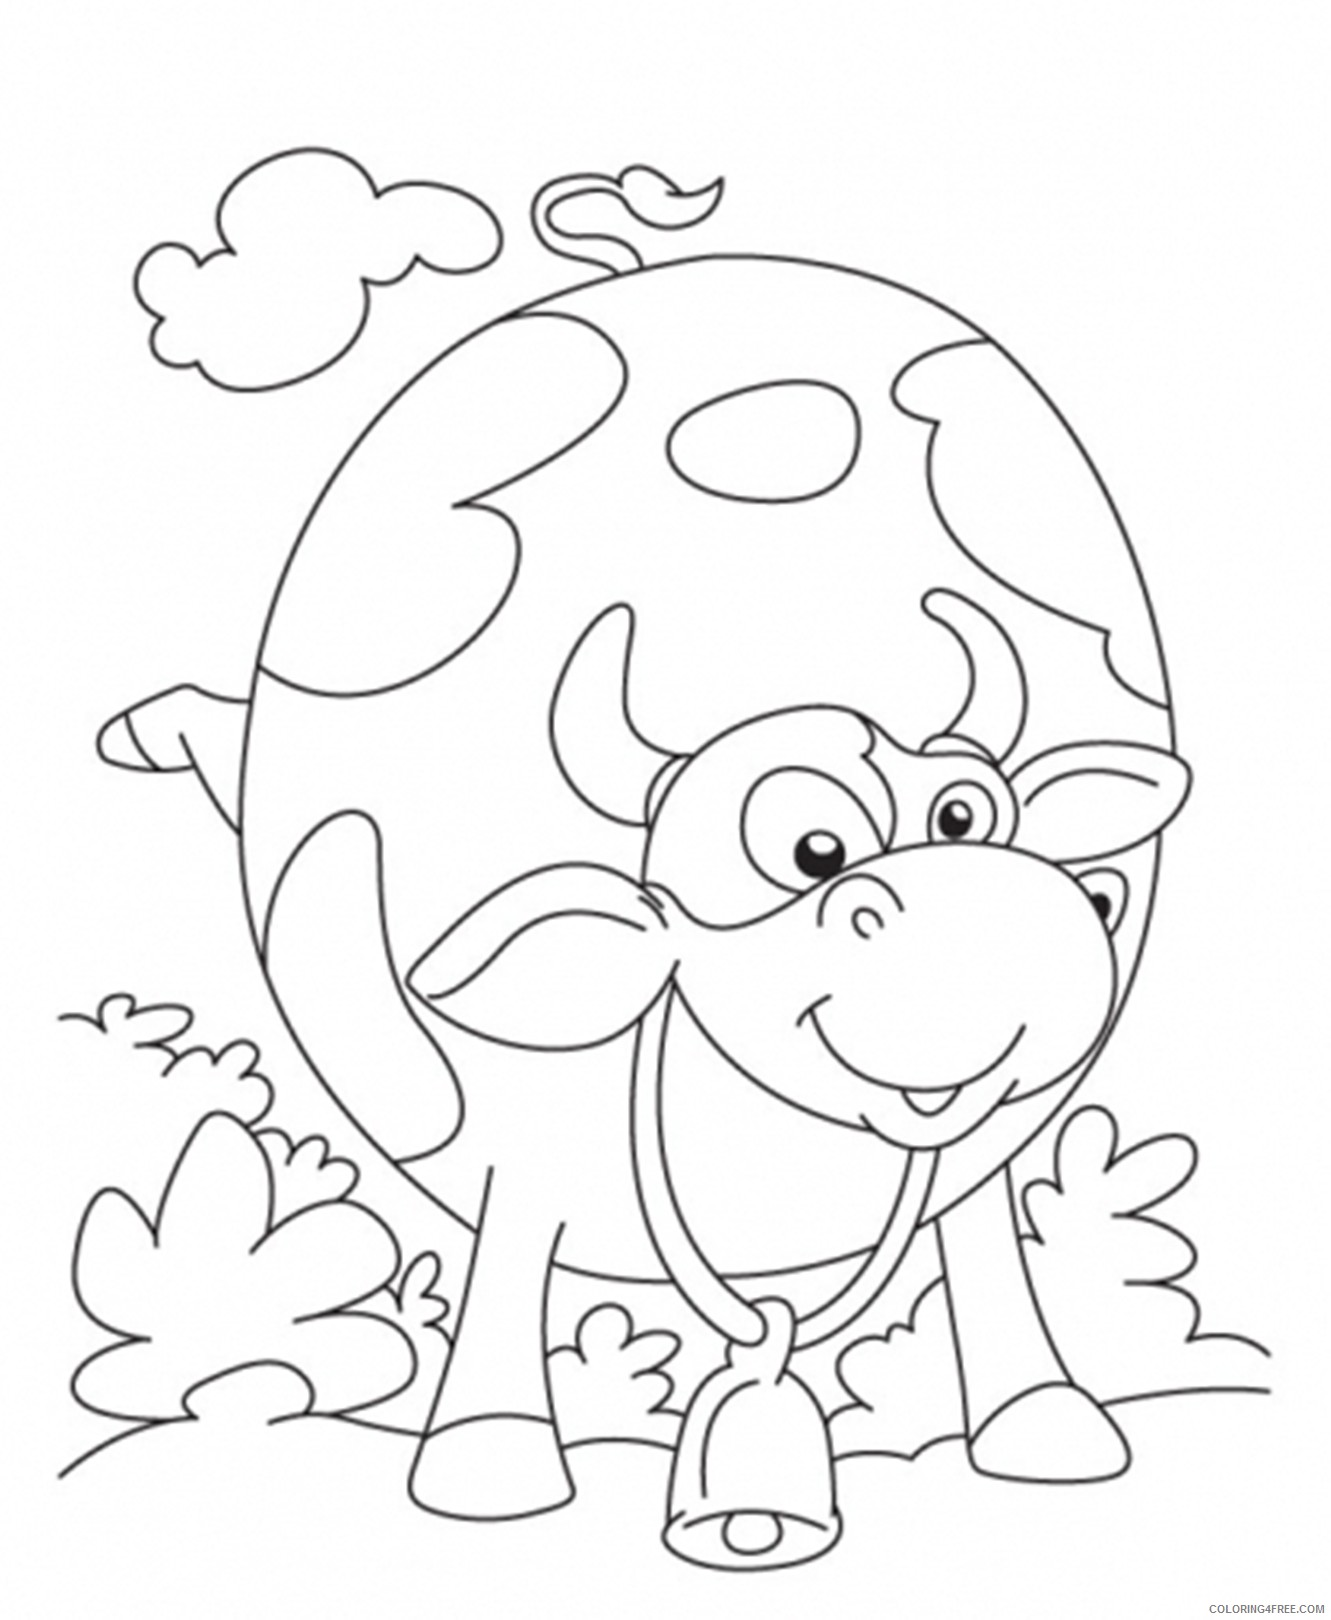 cow in field coloring pages for kids Coloring4free